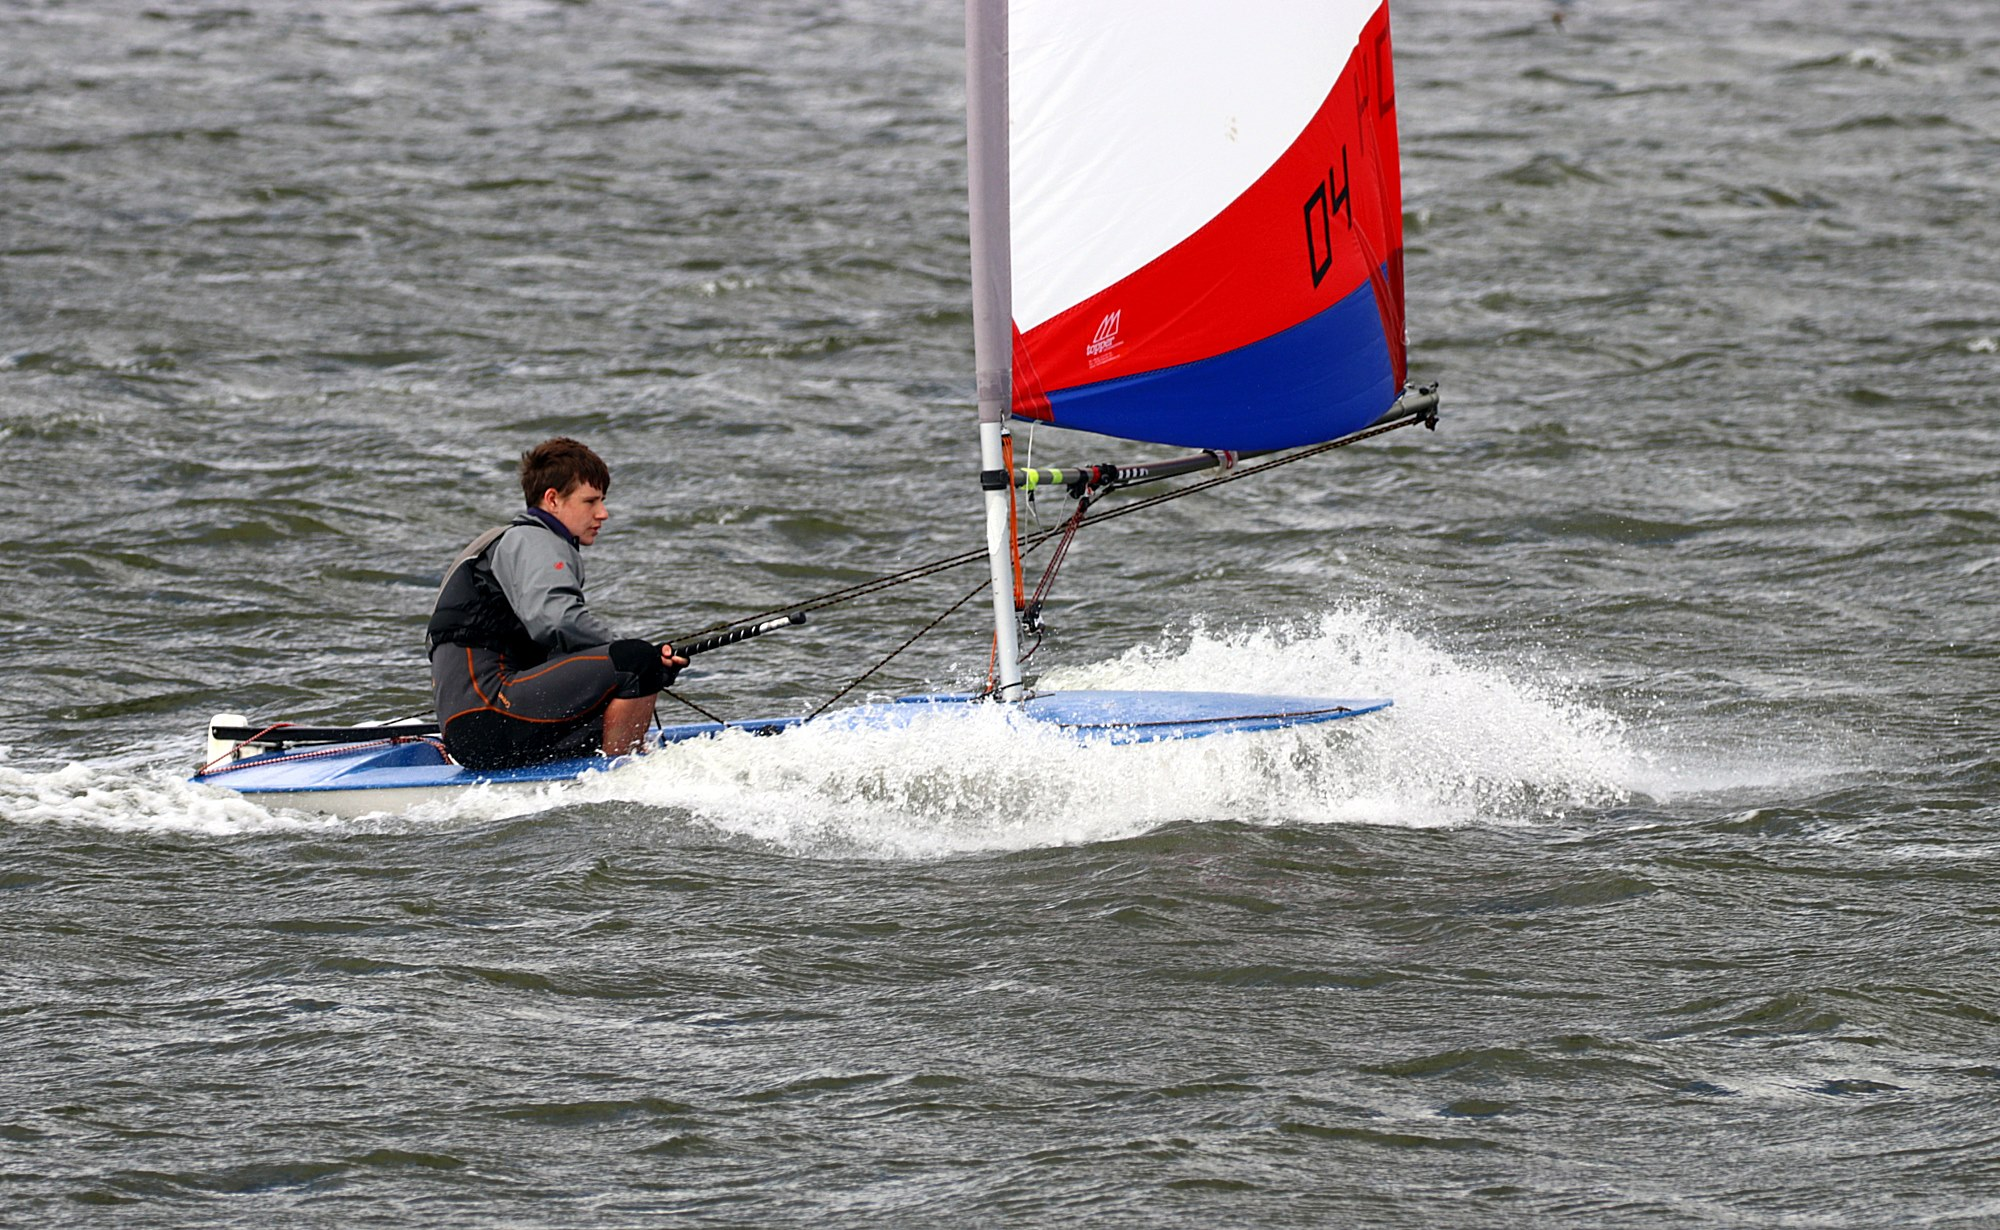 Return to Competitive Sailing